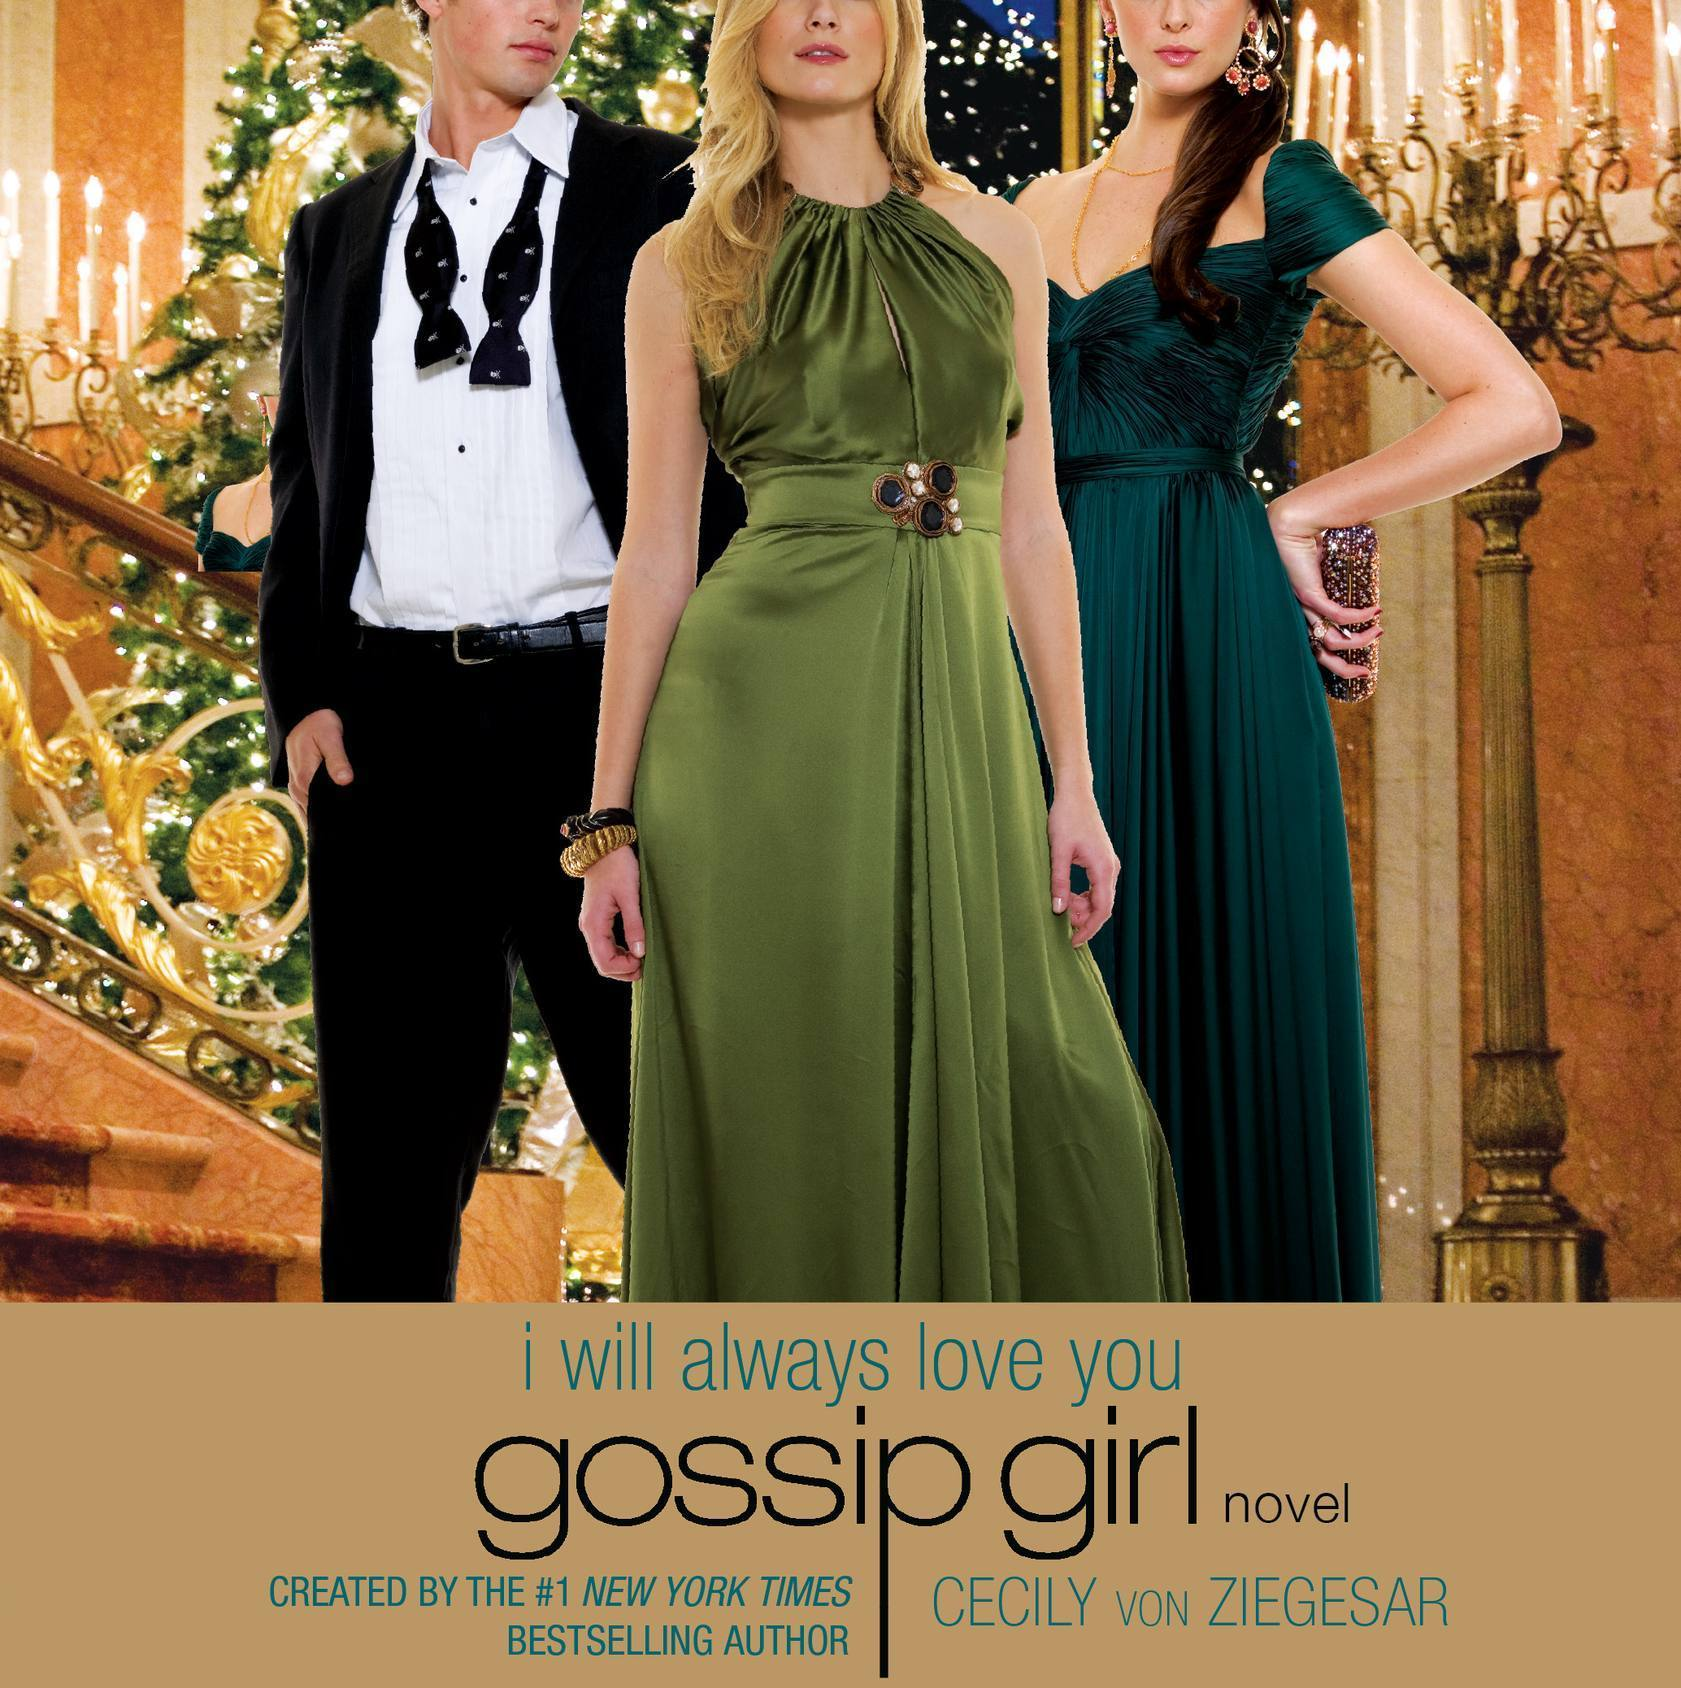 news and entertainment  gossip girl  dec 31 2012 10 17 53